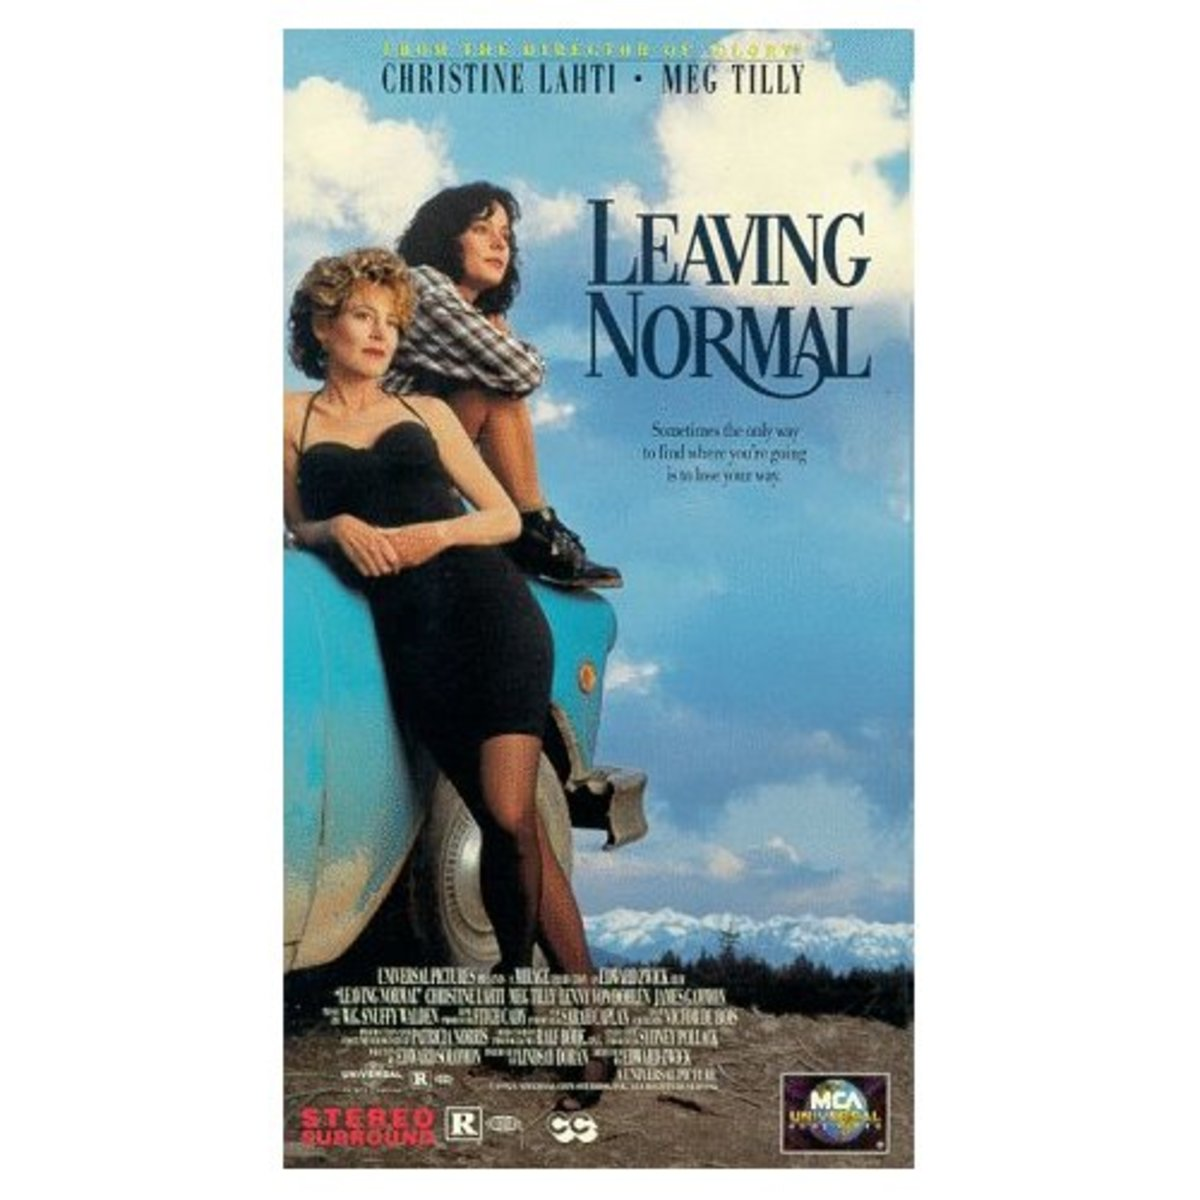 leaving-normal-christine-lahti-meg-tilly